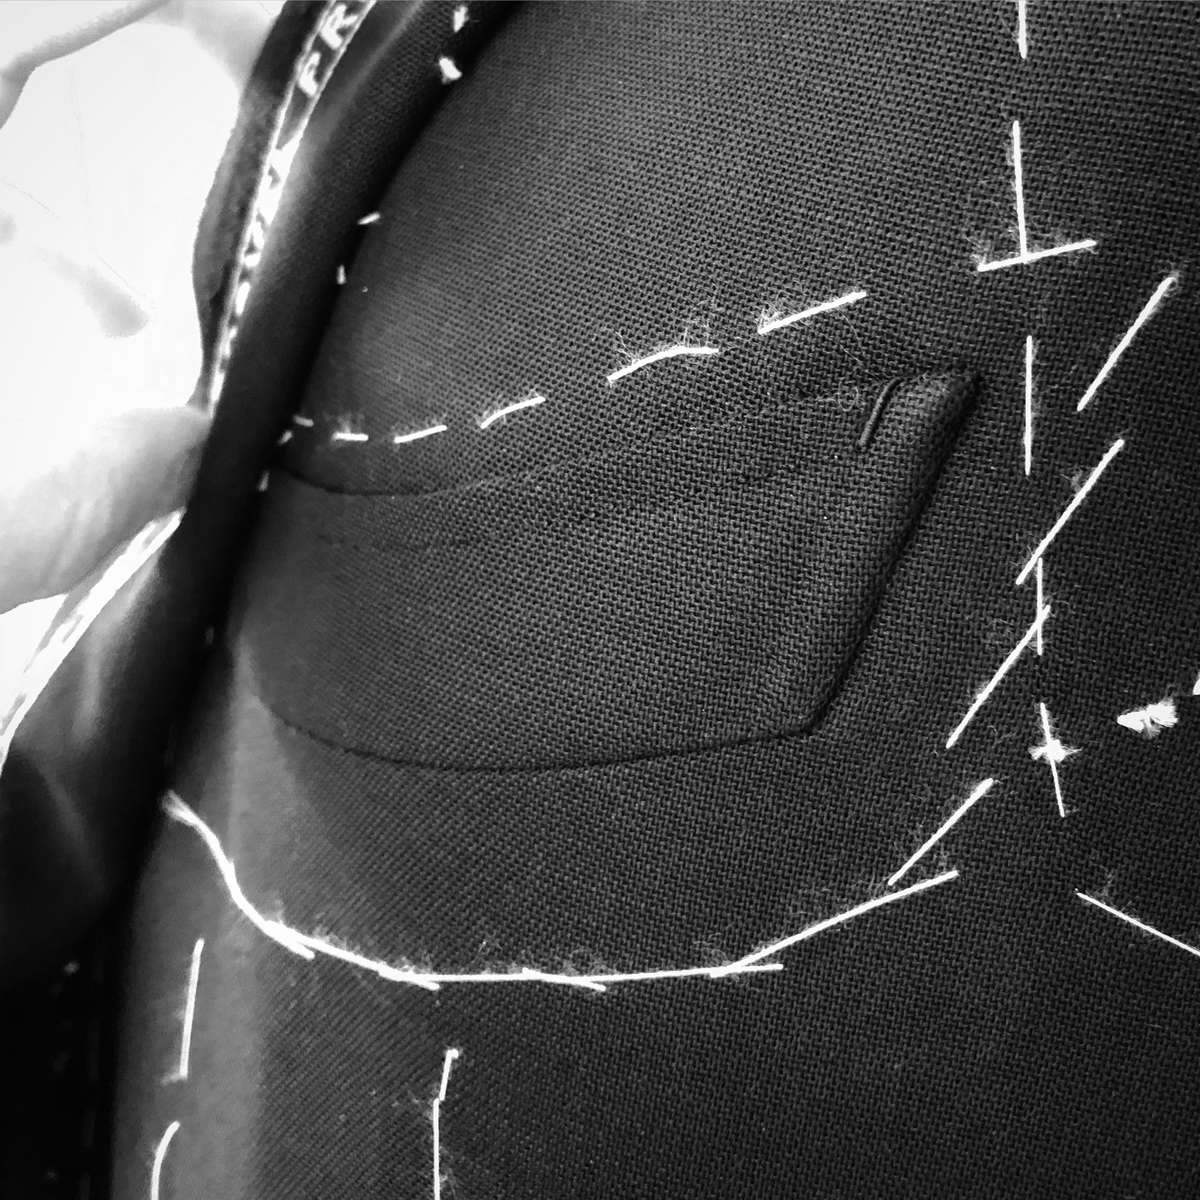 Sartoria Sciarra entirely hand crafted bespoke jacket in progress. Close up of barchetta out breast pocket with hand crafted bar tack and top stitching using Italian silk twist strengthened with bees wax. Made from a bright navy Loro Piana Zelander high twist wool fabric. Luxury bespoke Neapolitan tailoring.